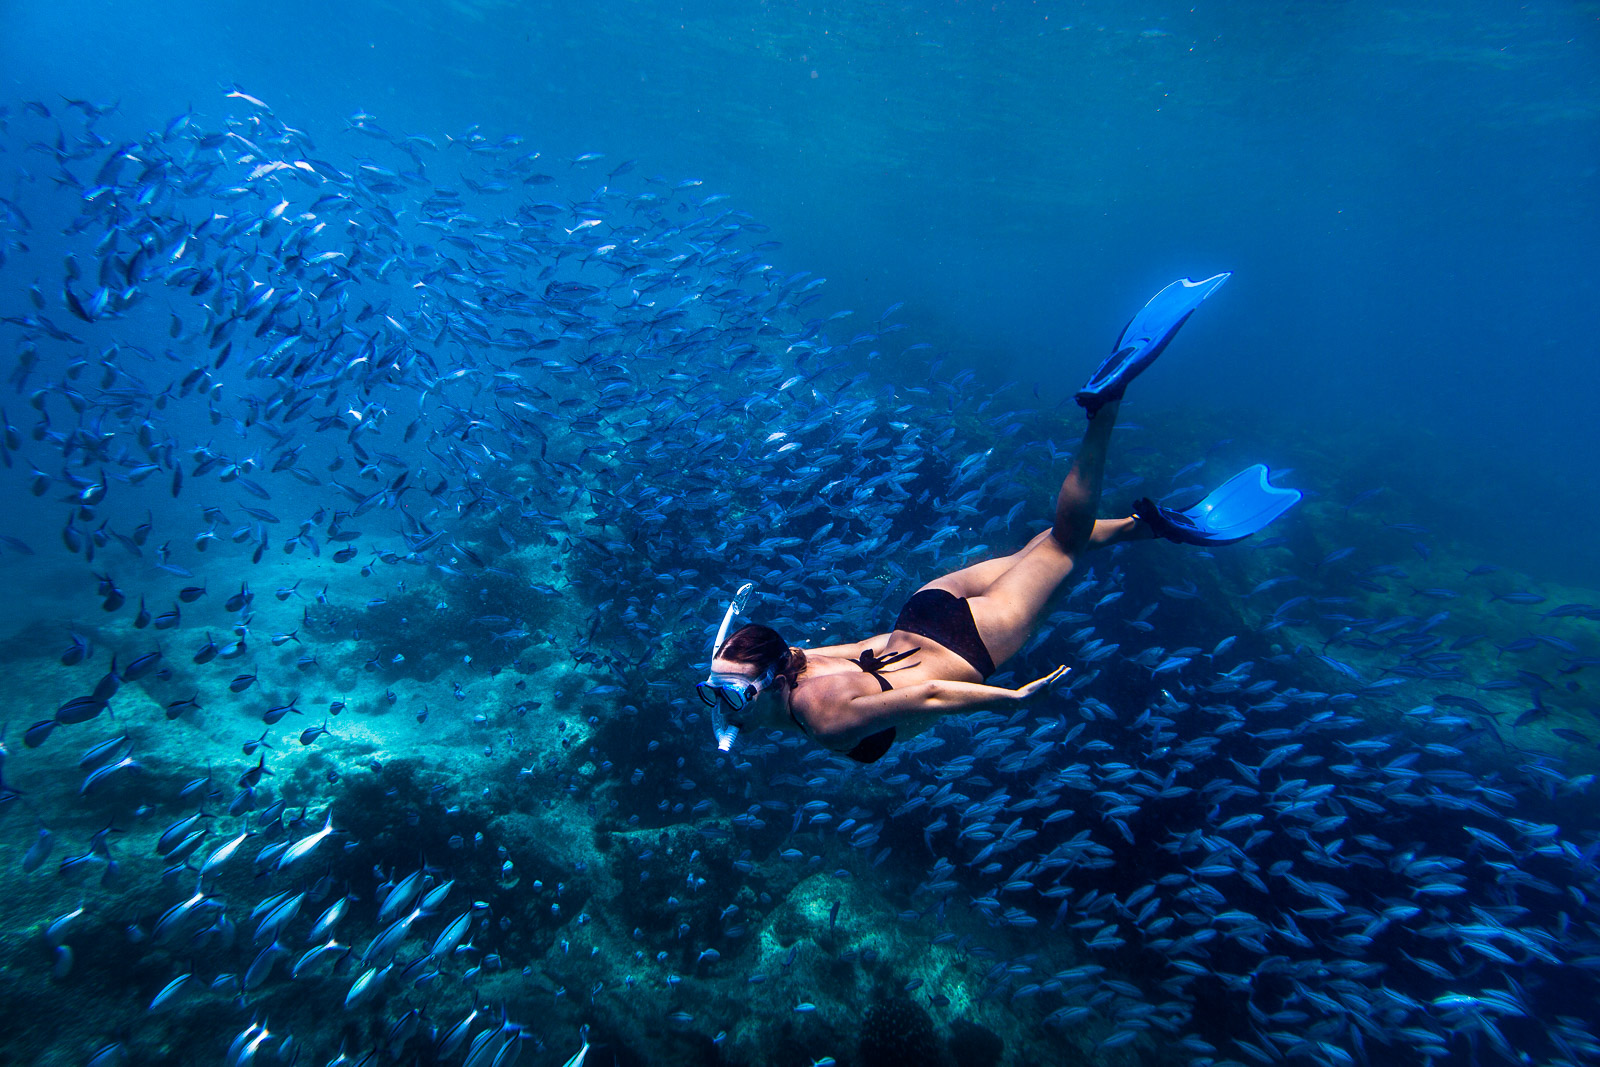 Snorkeling in a school of fish outside Sunset beach on Mahe island in the Seychelles